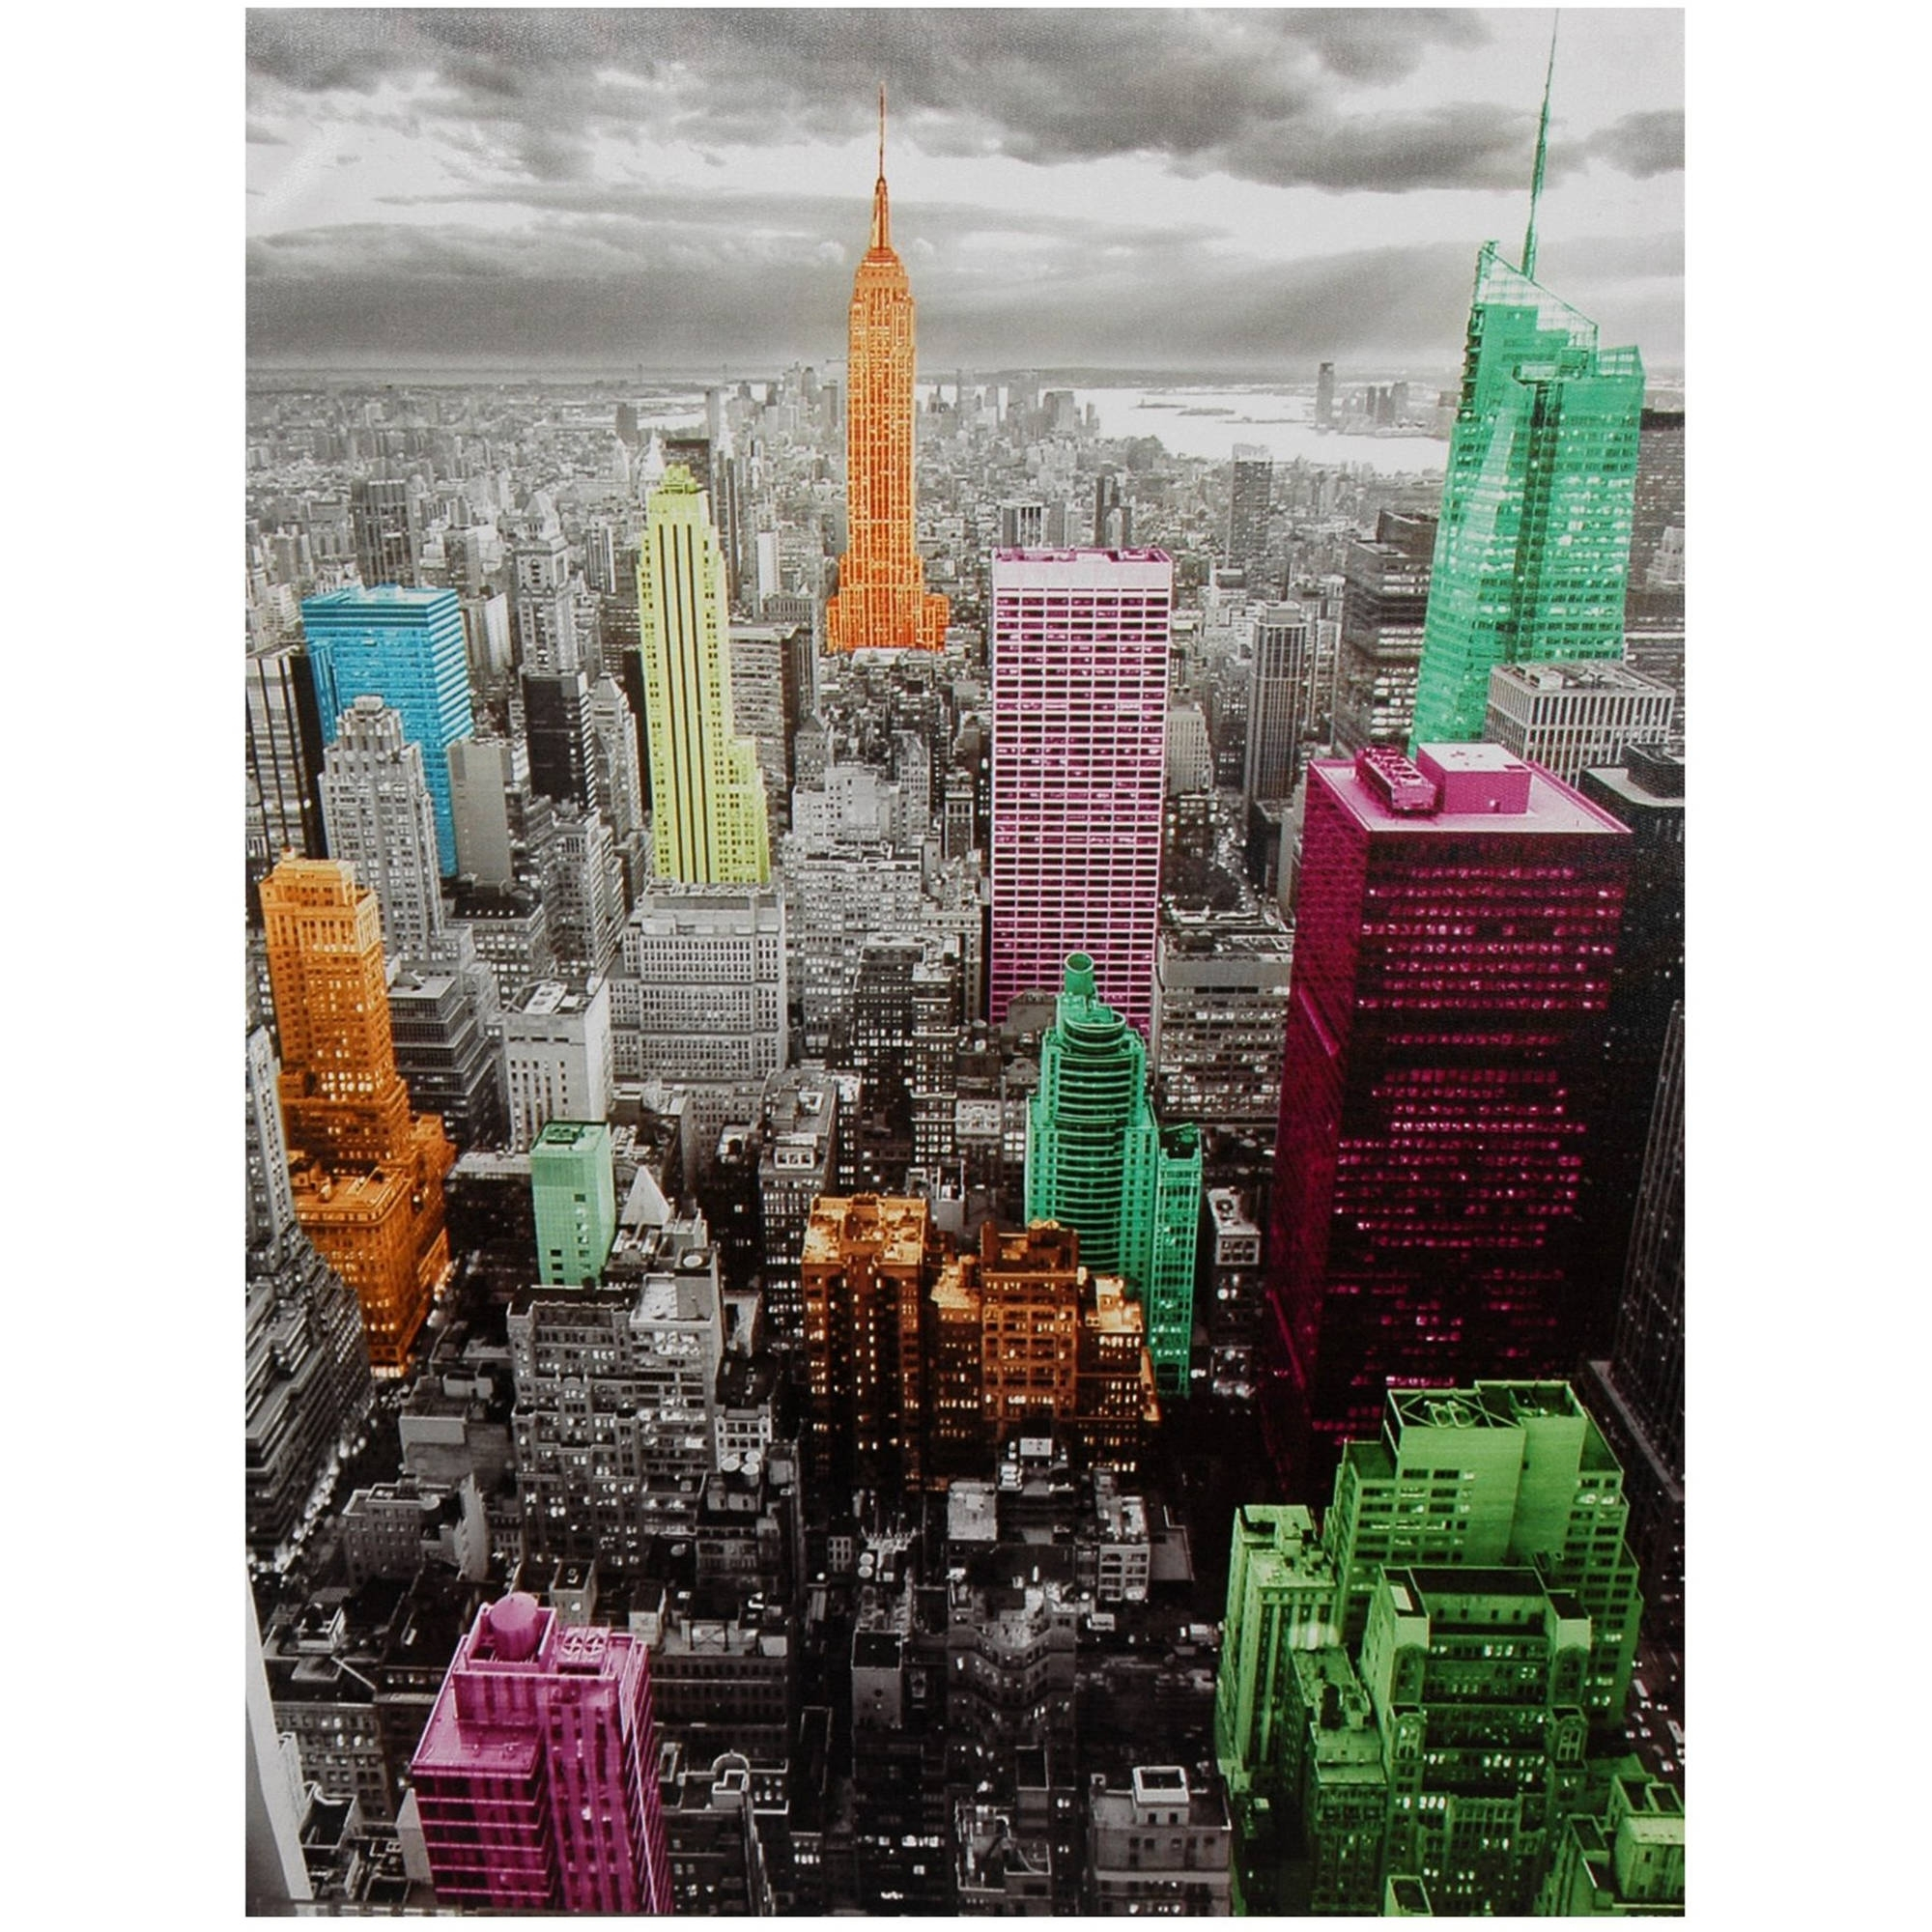 High Lights Of New York Skyline Canvas Wall Art – Walmart Within Best And Newest Nyc Wall Art (Gallery 4 of 20)